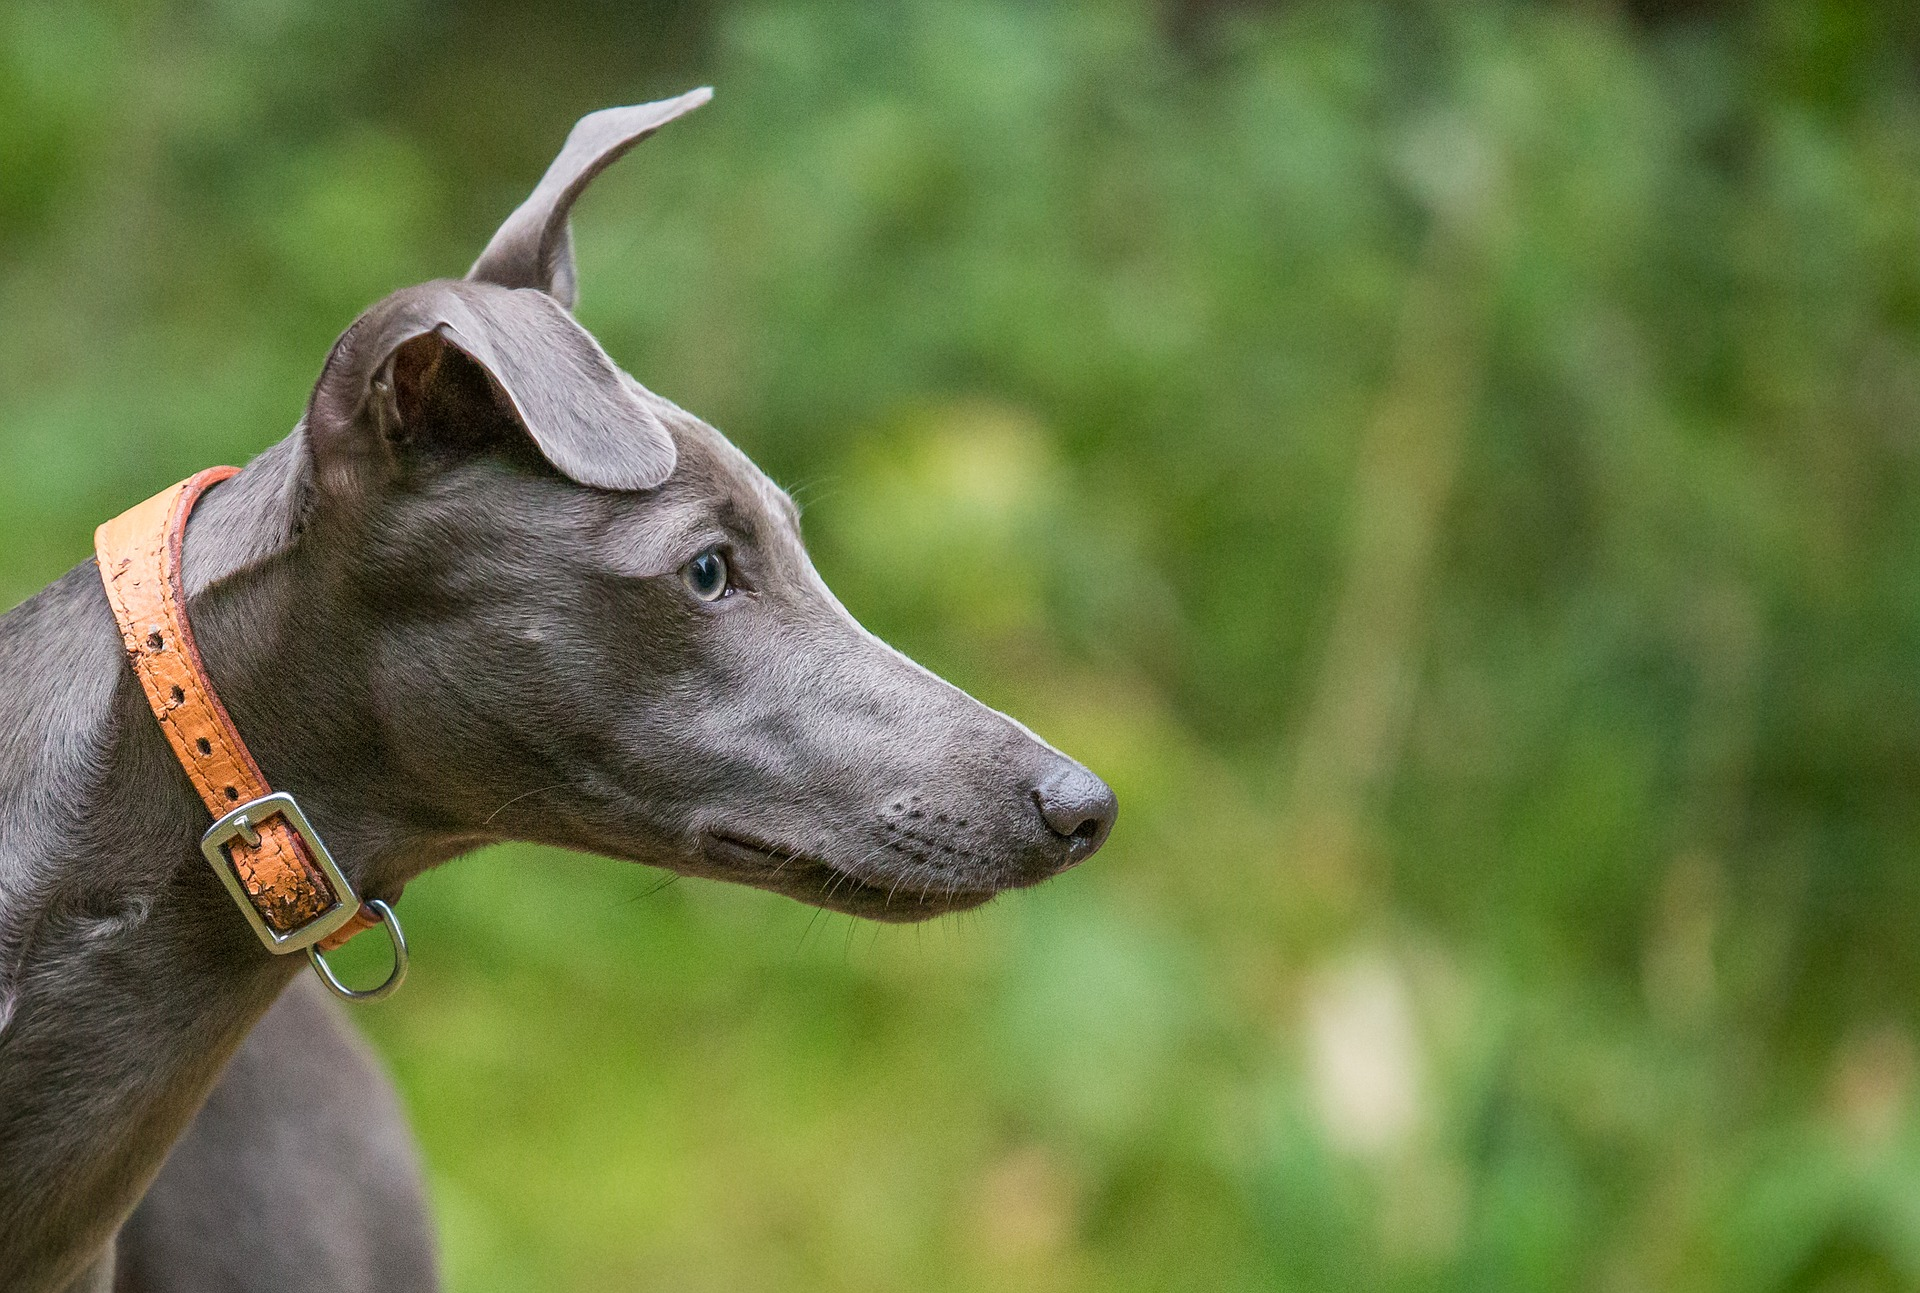 Whippet with high prey drive